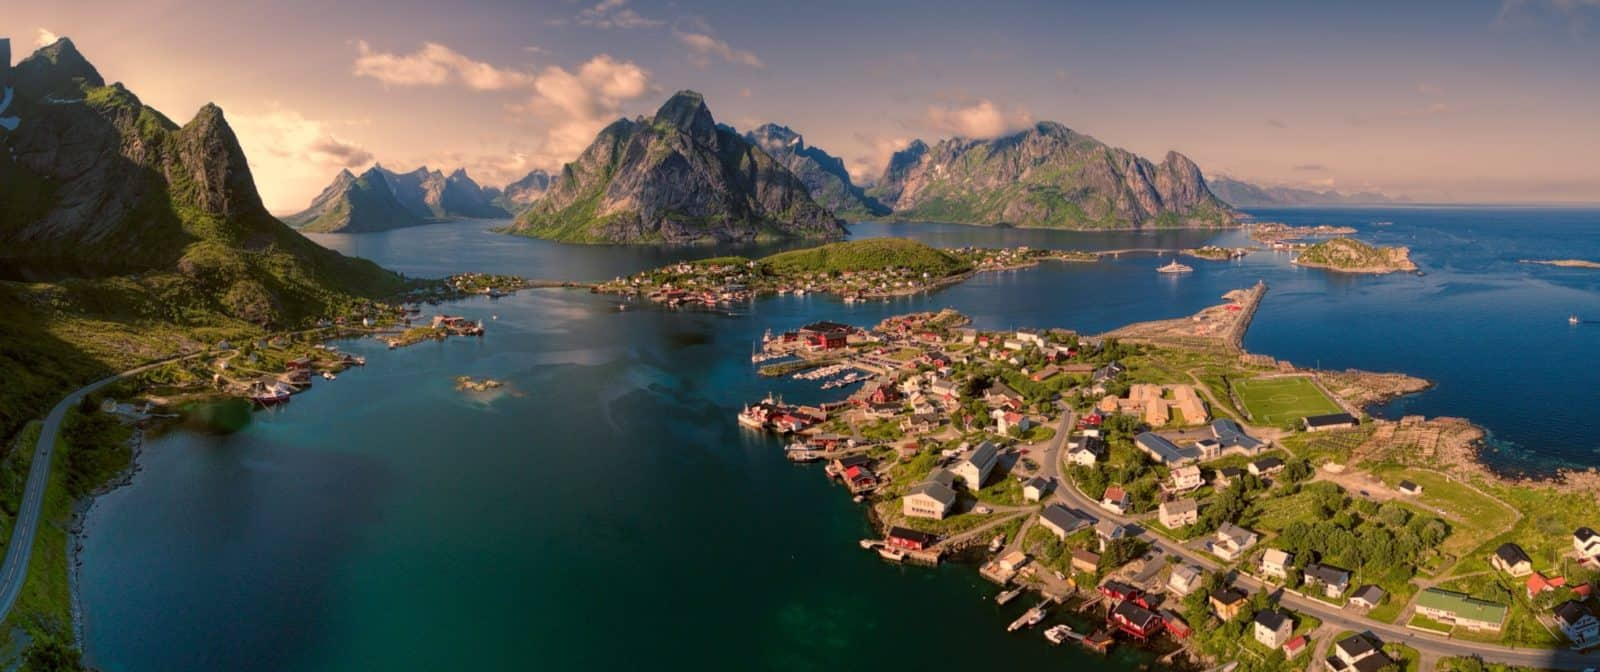 Breathtaking aerial panorama of fishing town Reine and surrounding fjords on Lofoten islands in Norway, famous for its picturesque scenery, Tomas Griger